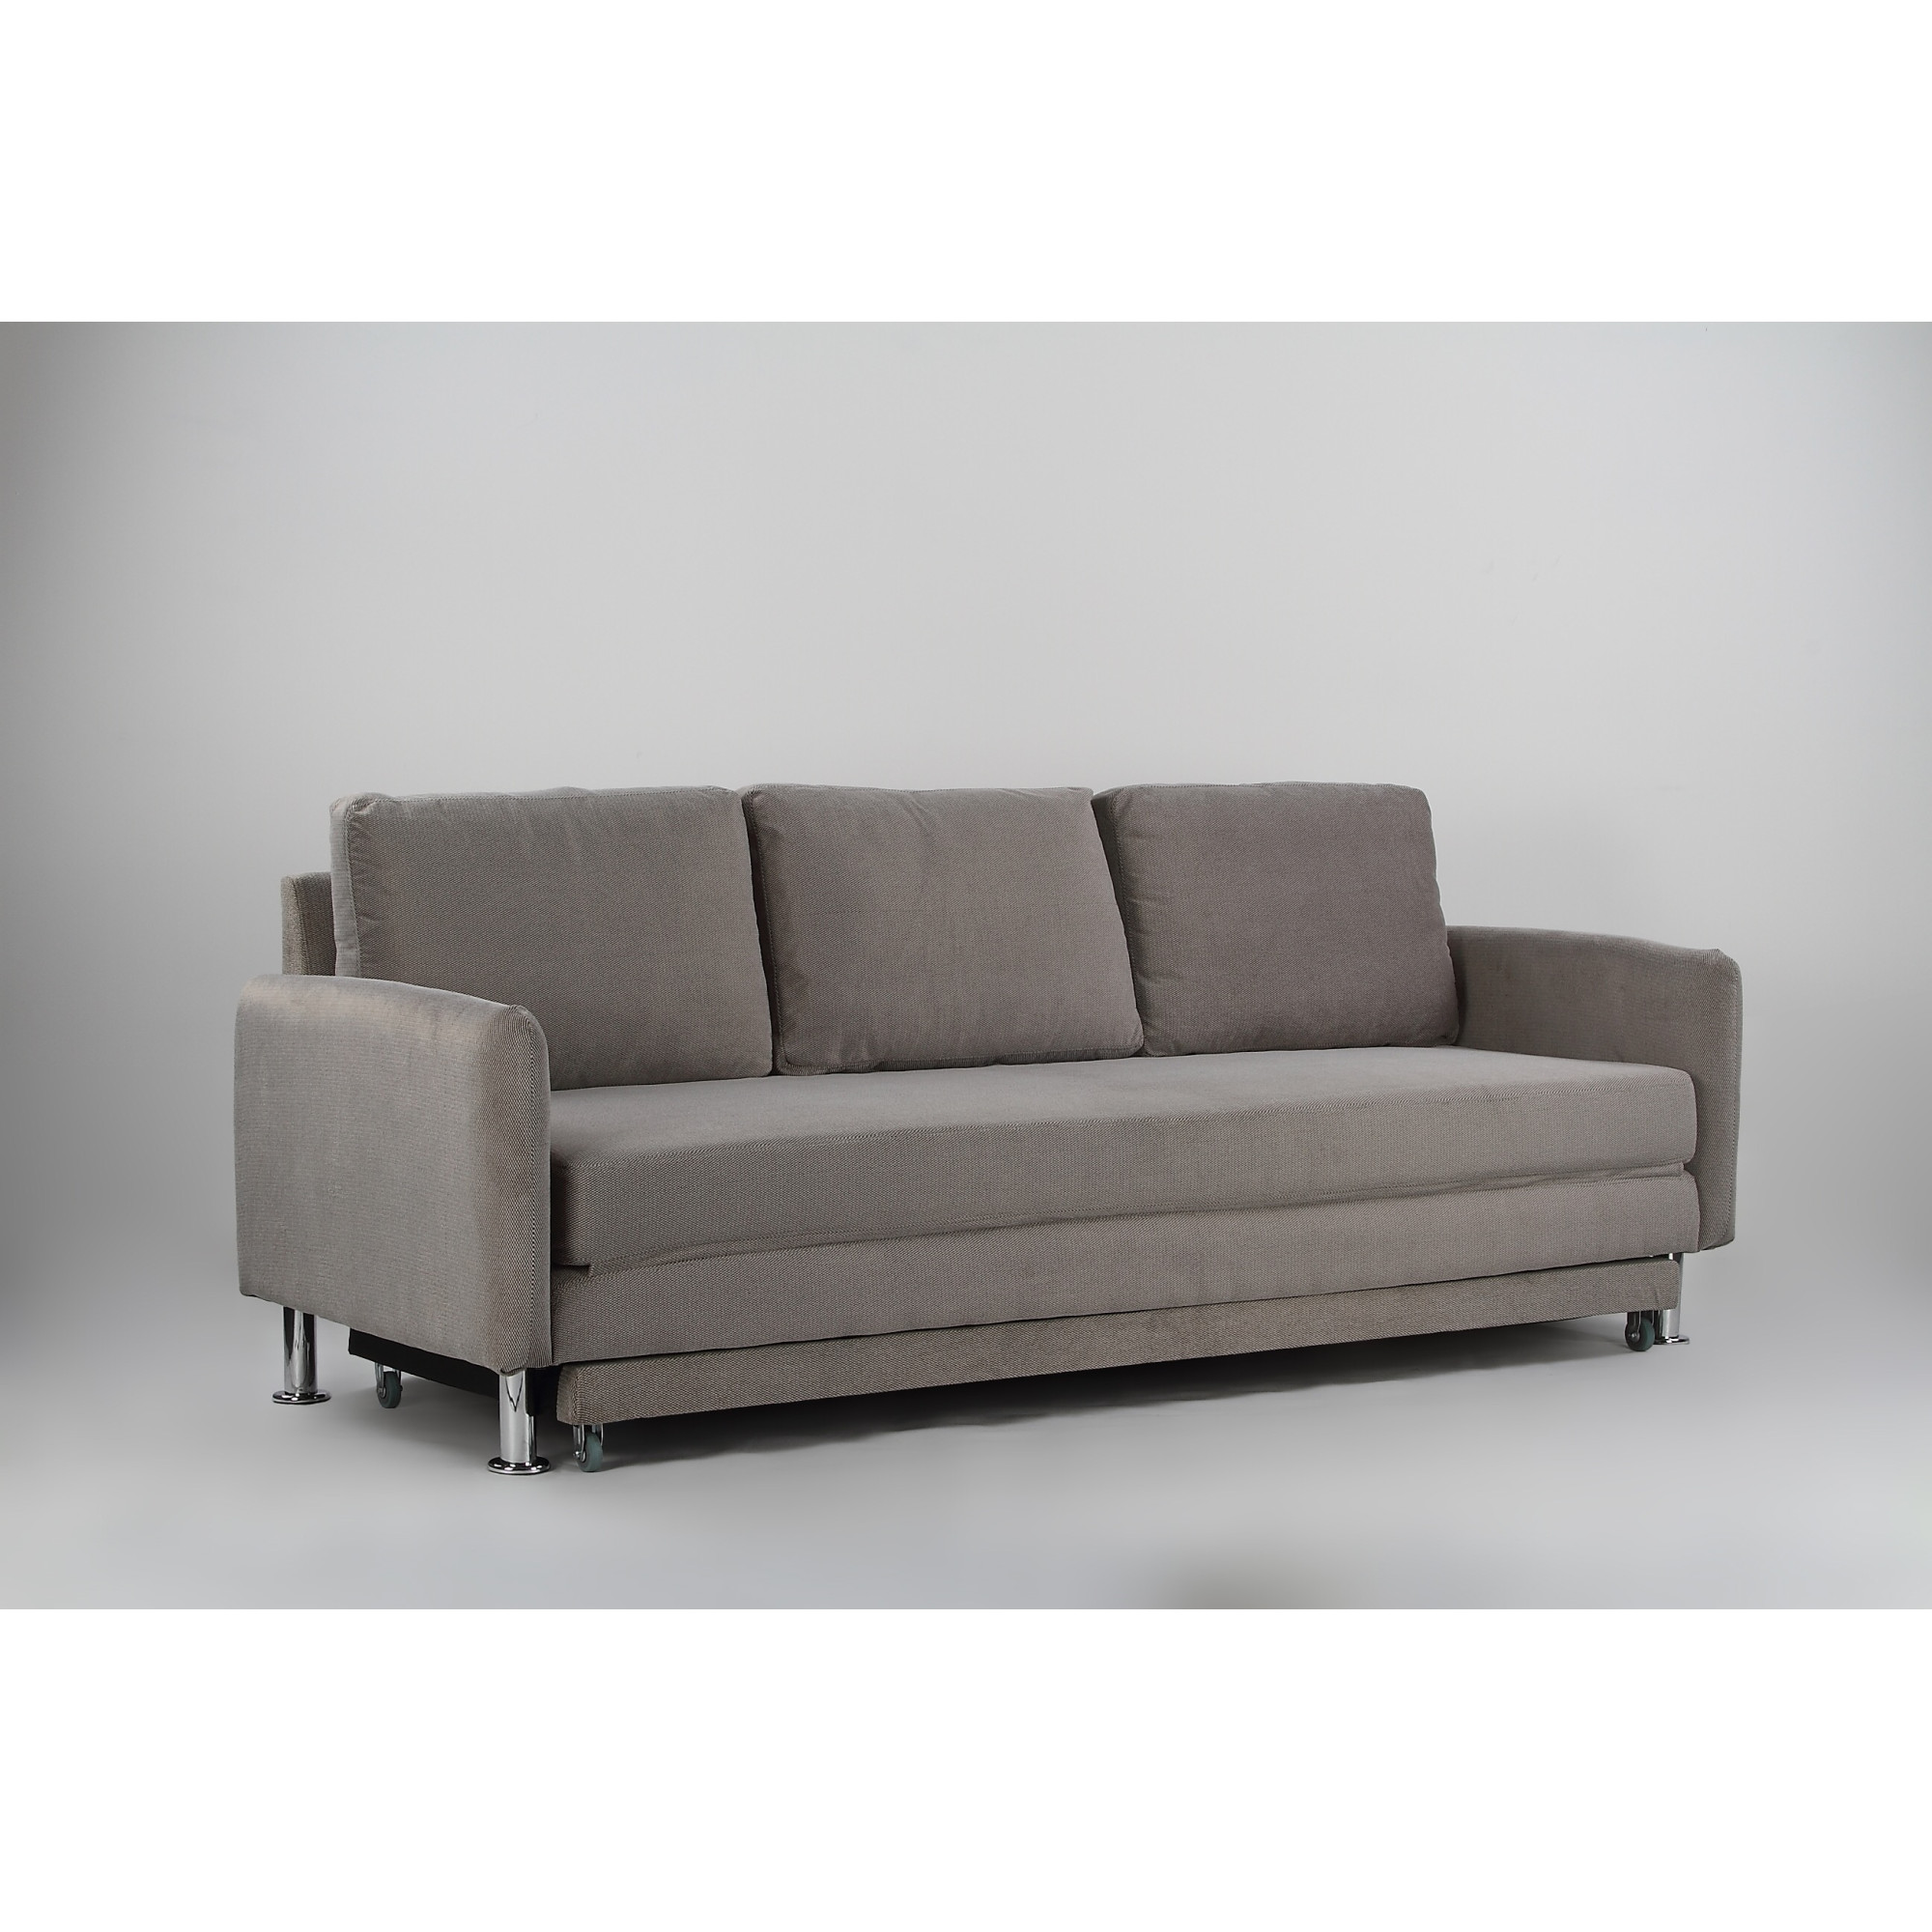 z gallerie bleeker sofa reviews cheap fabric sofas sydney cozy 3 seater grey pull out bed furniture and home